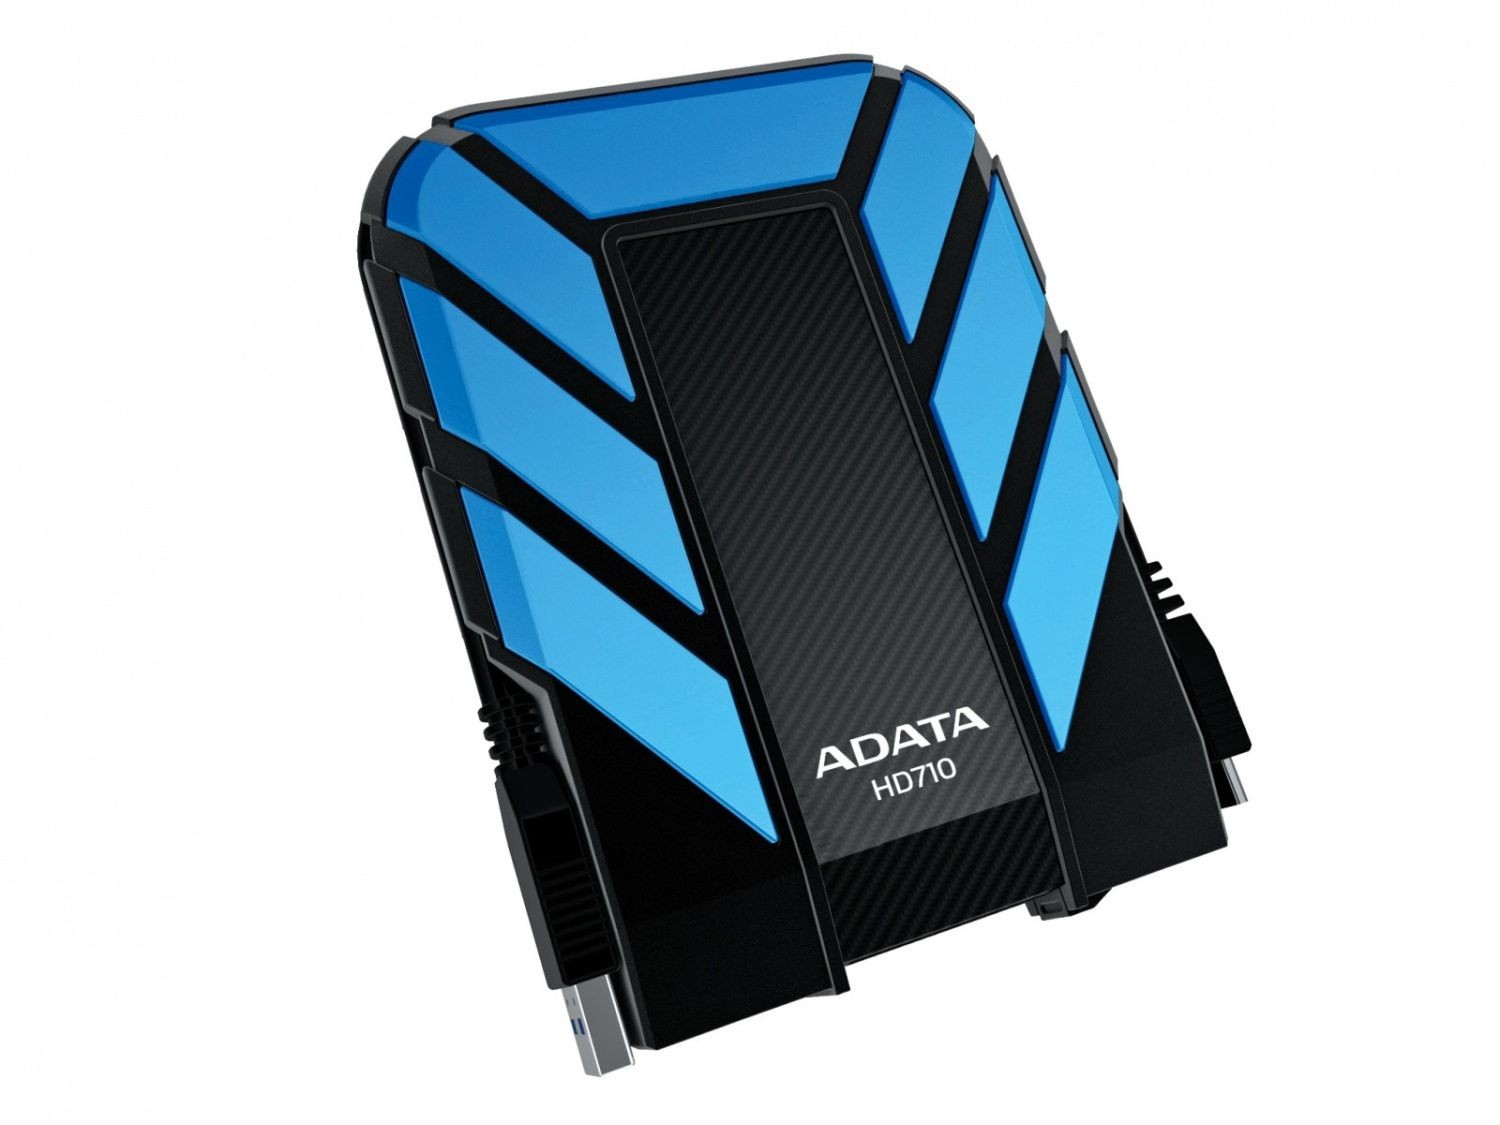 A-Data Dysk zewnętrzny HD710 1TB 2.5'' HDD USB 3.0 Blue water/shock proof